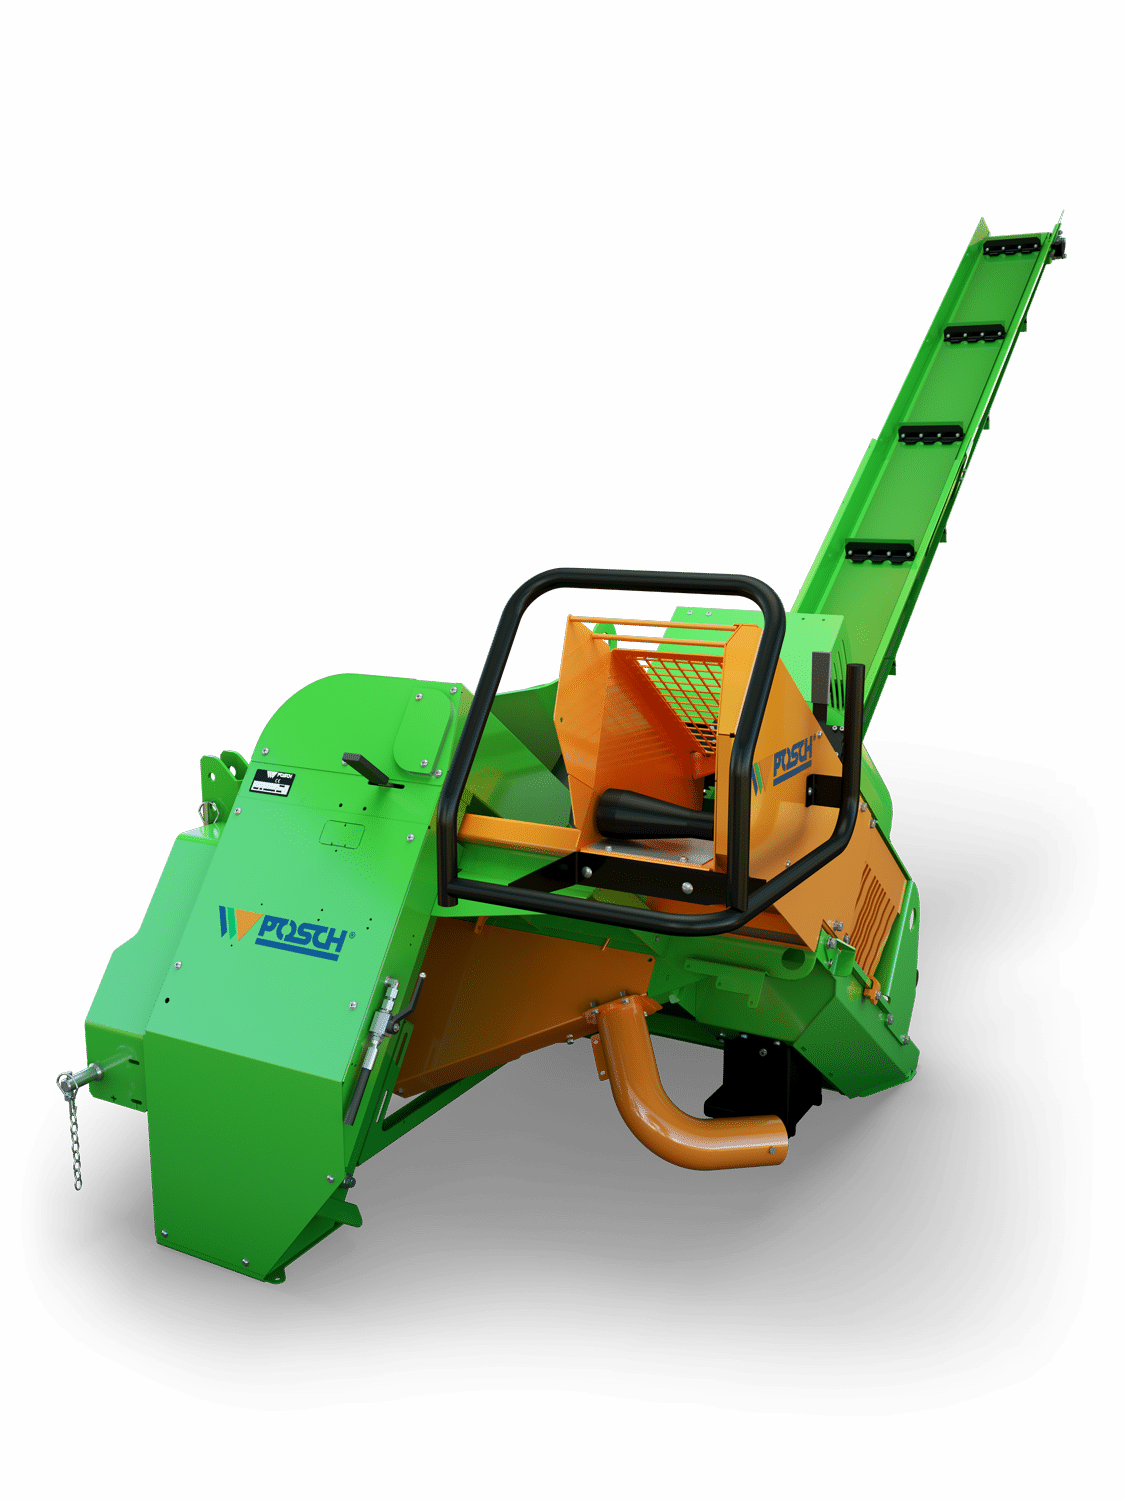 Posch semi-automatic firewood saw with conveyor belt